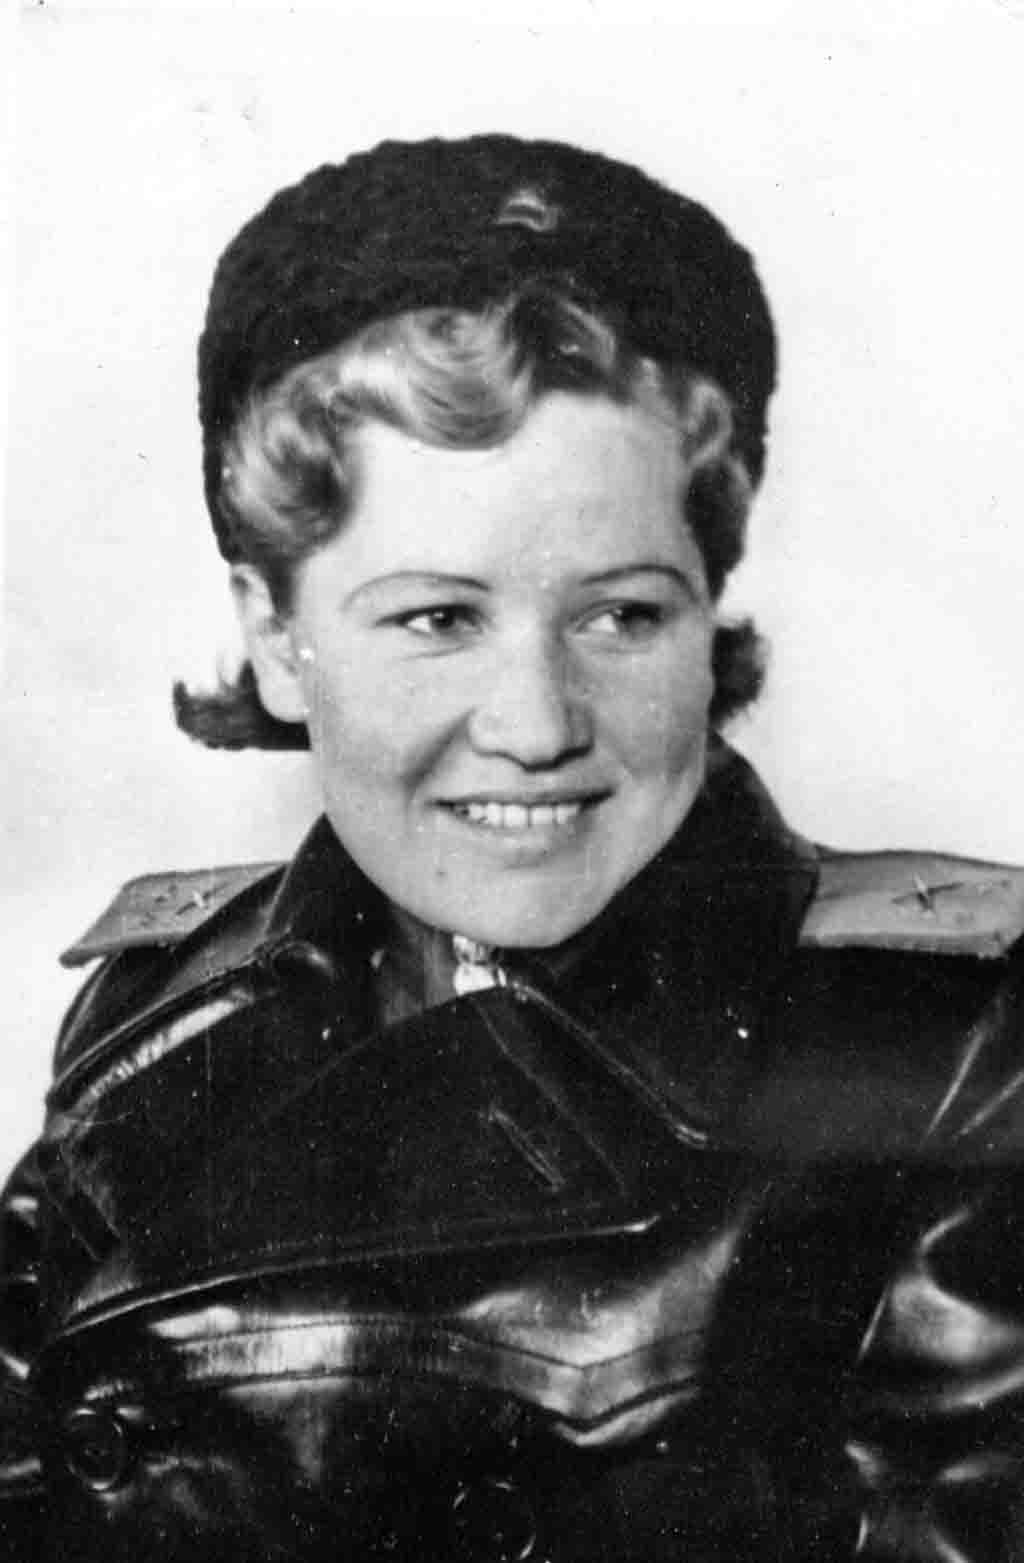 World War II: Tamara Prokhorova